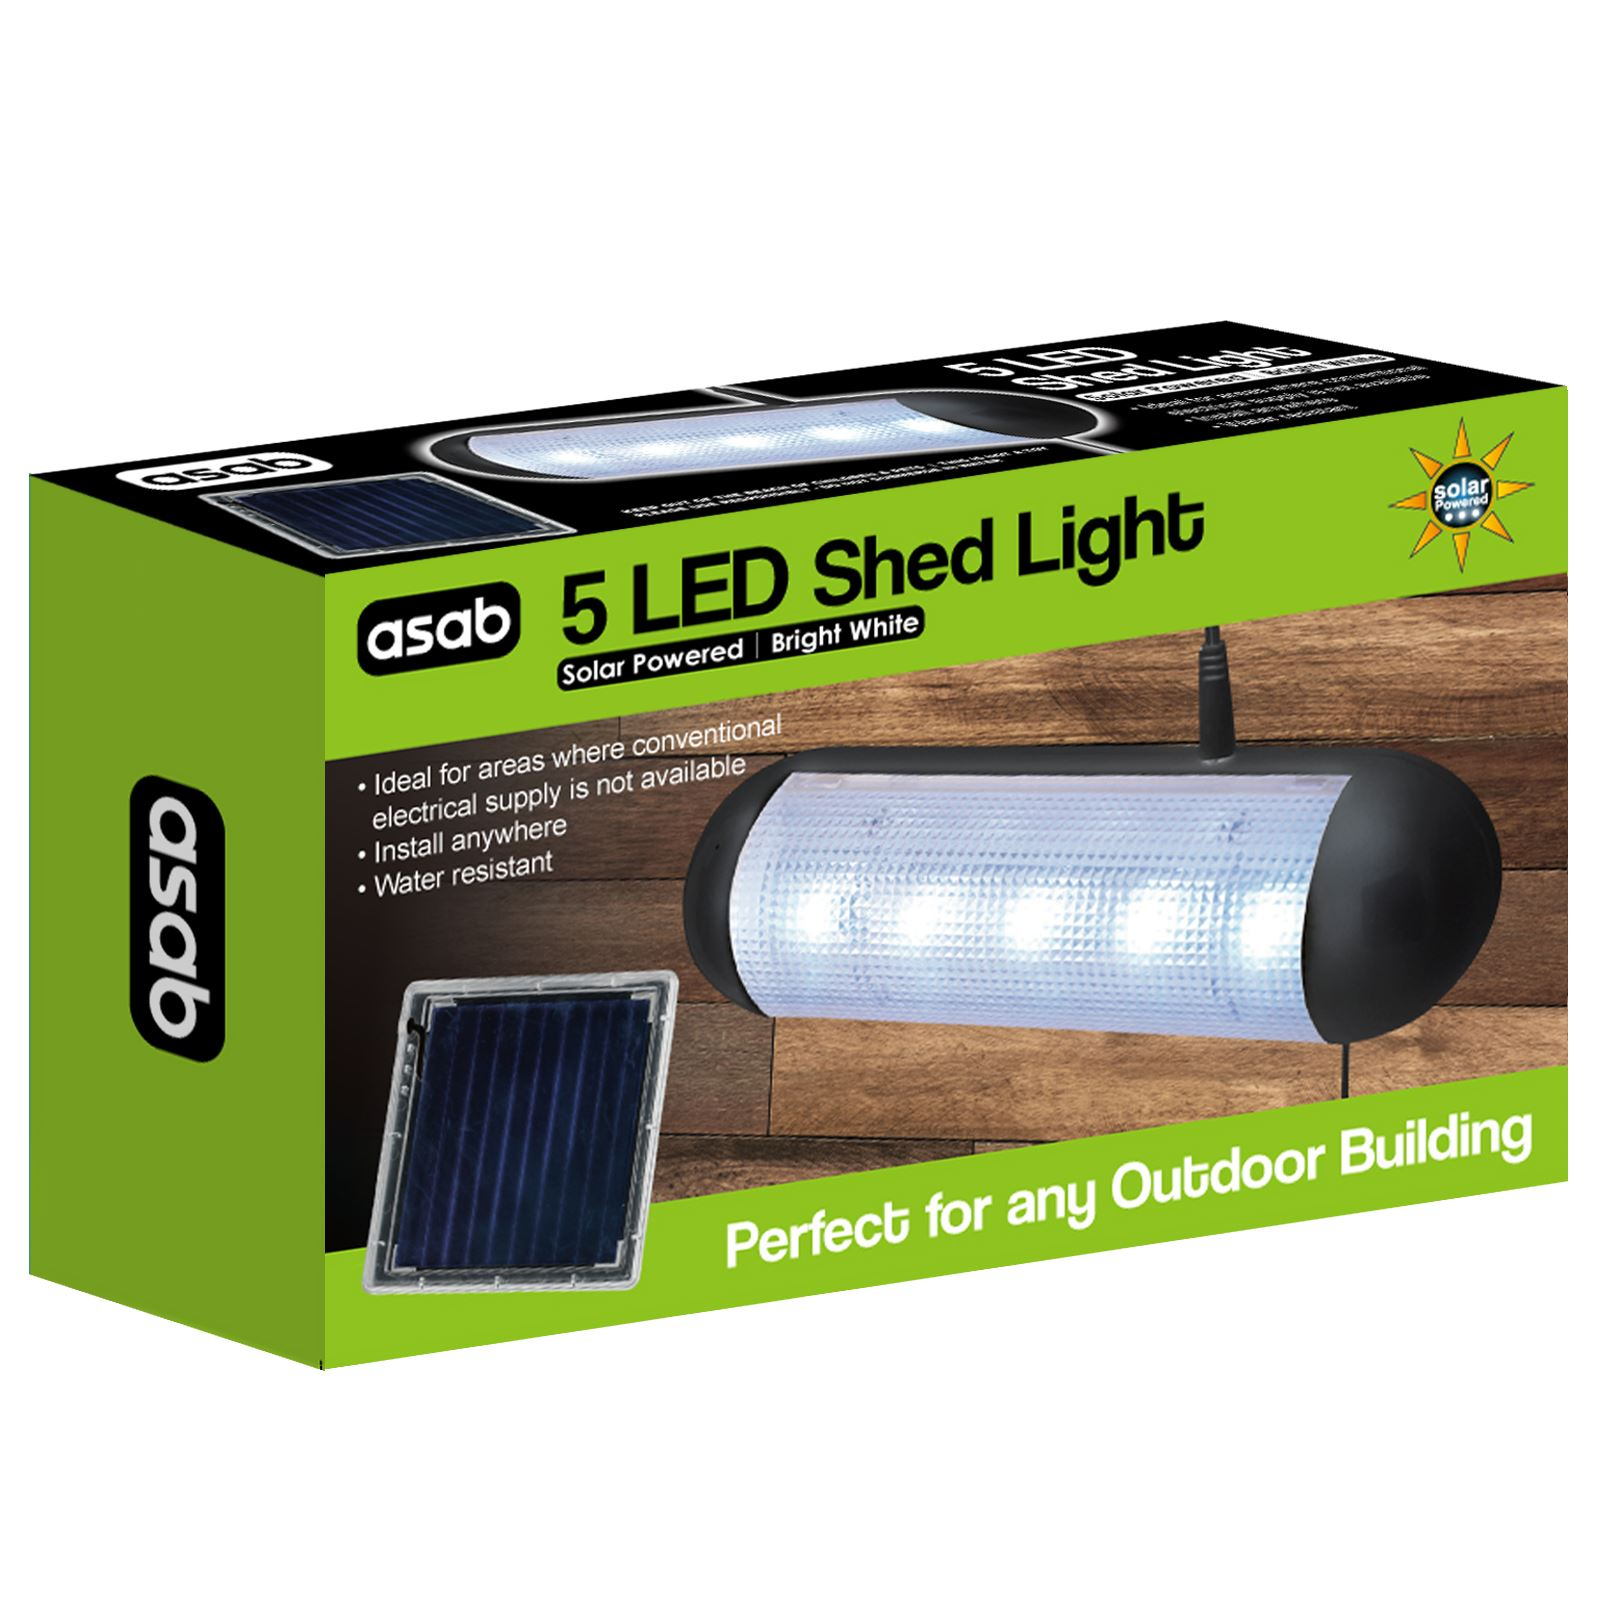 Solar-Powered-5-Bright-White-LED-Shed-Light-Rechargeable-Outdoor-Security-Lamp